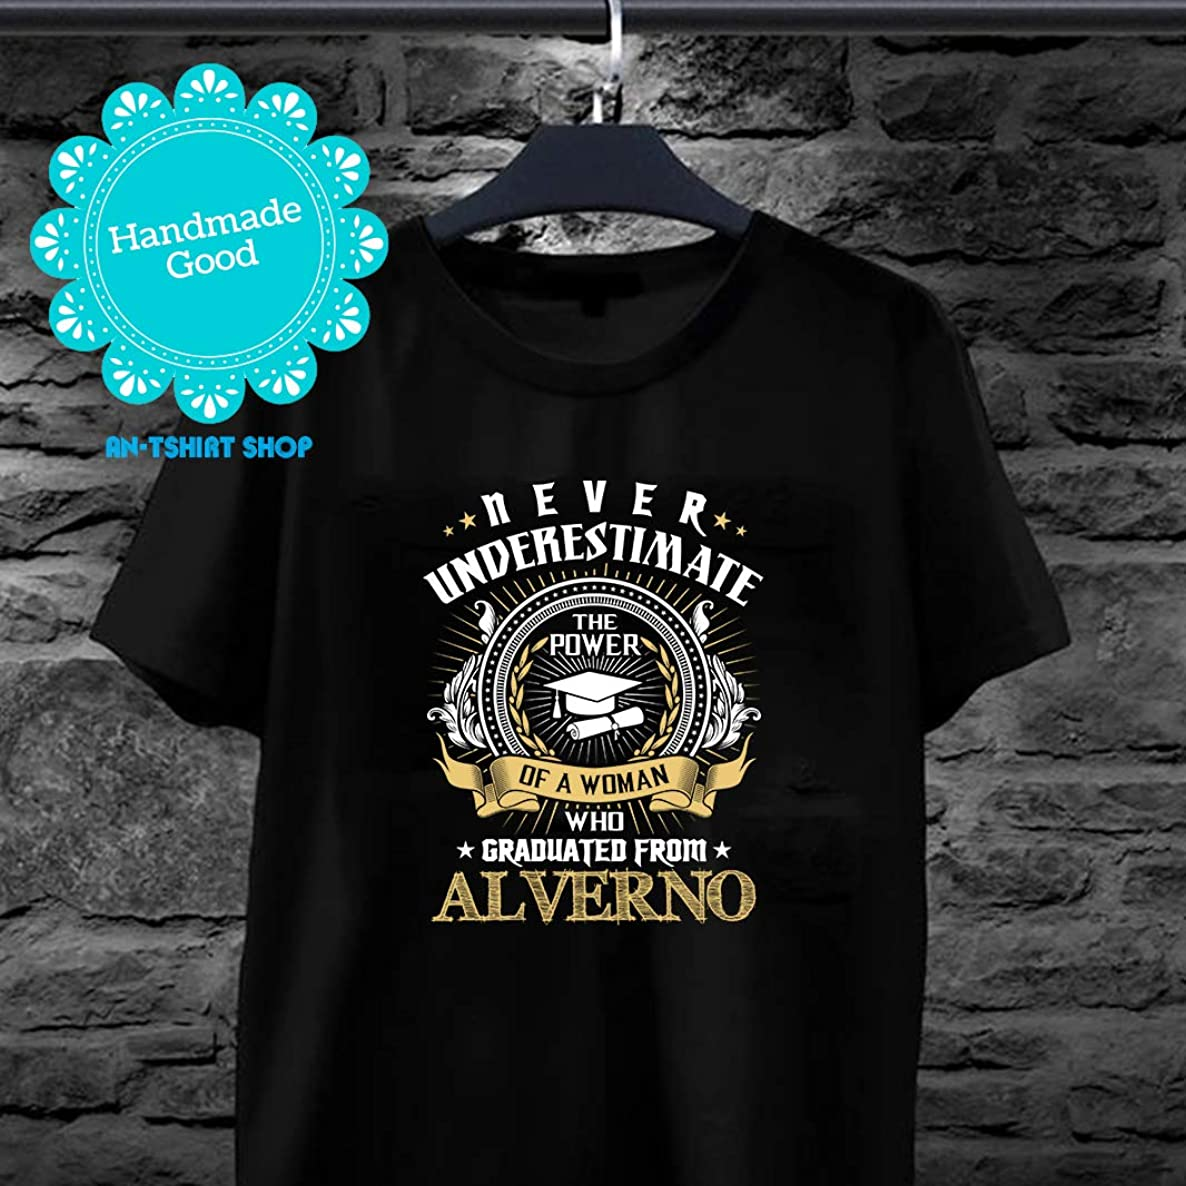 Alverno Woman Woman Graduated From Alverno T shirts for men and women